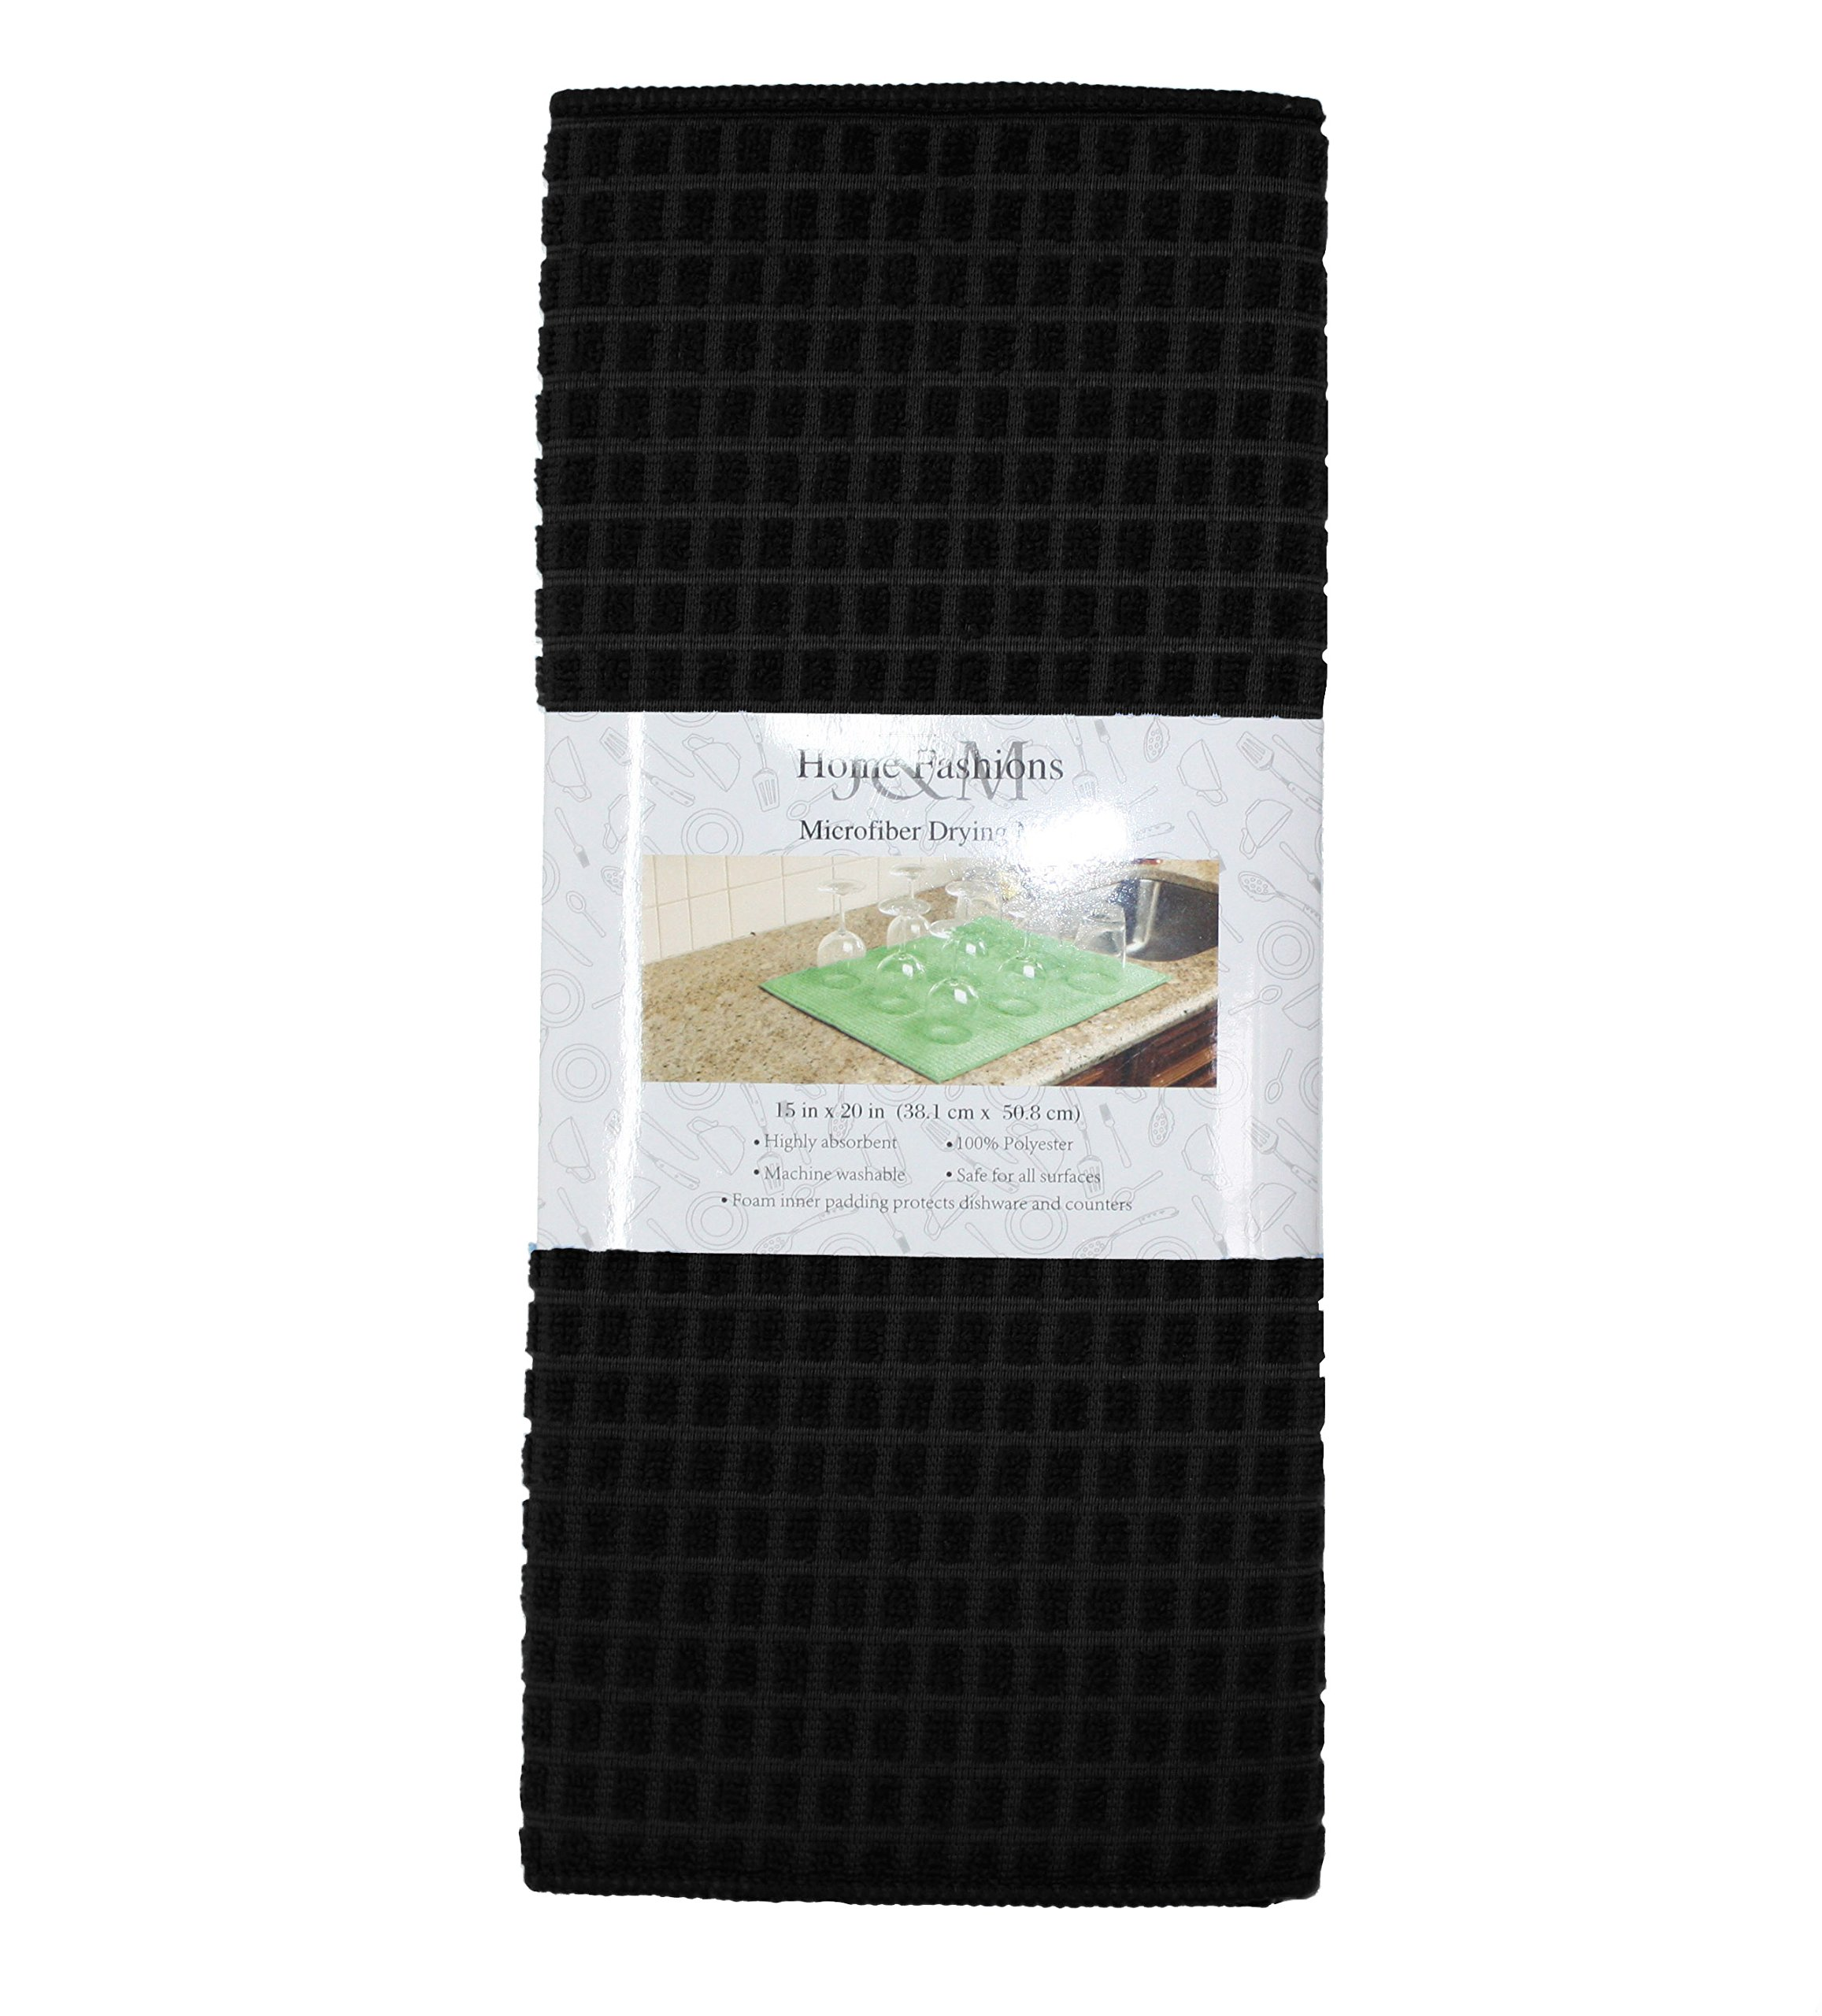 J&M Home Fashions Microfiber Check Dish Drying Mat, 15x20'', Absorbent Fast Dry Machine Washable for Kitchen Countertop-Black